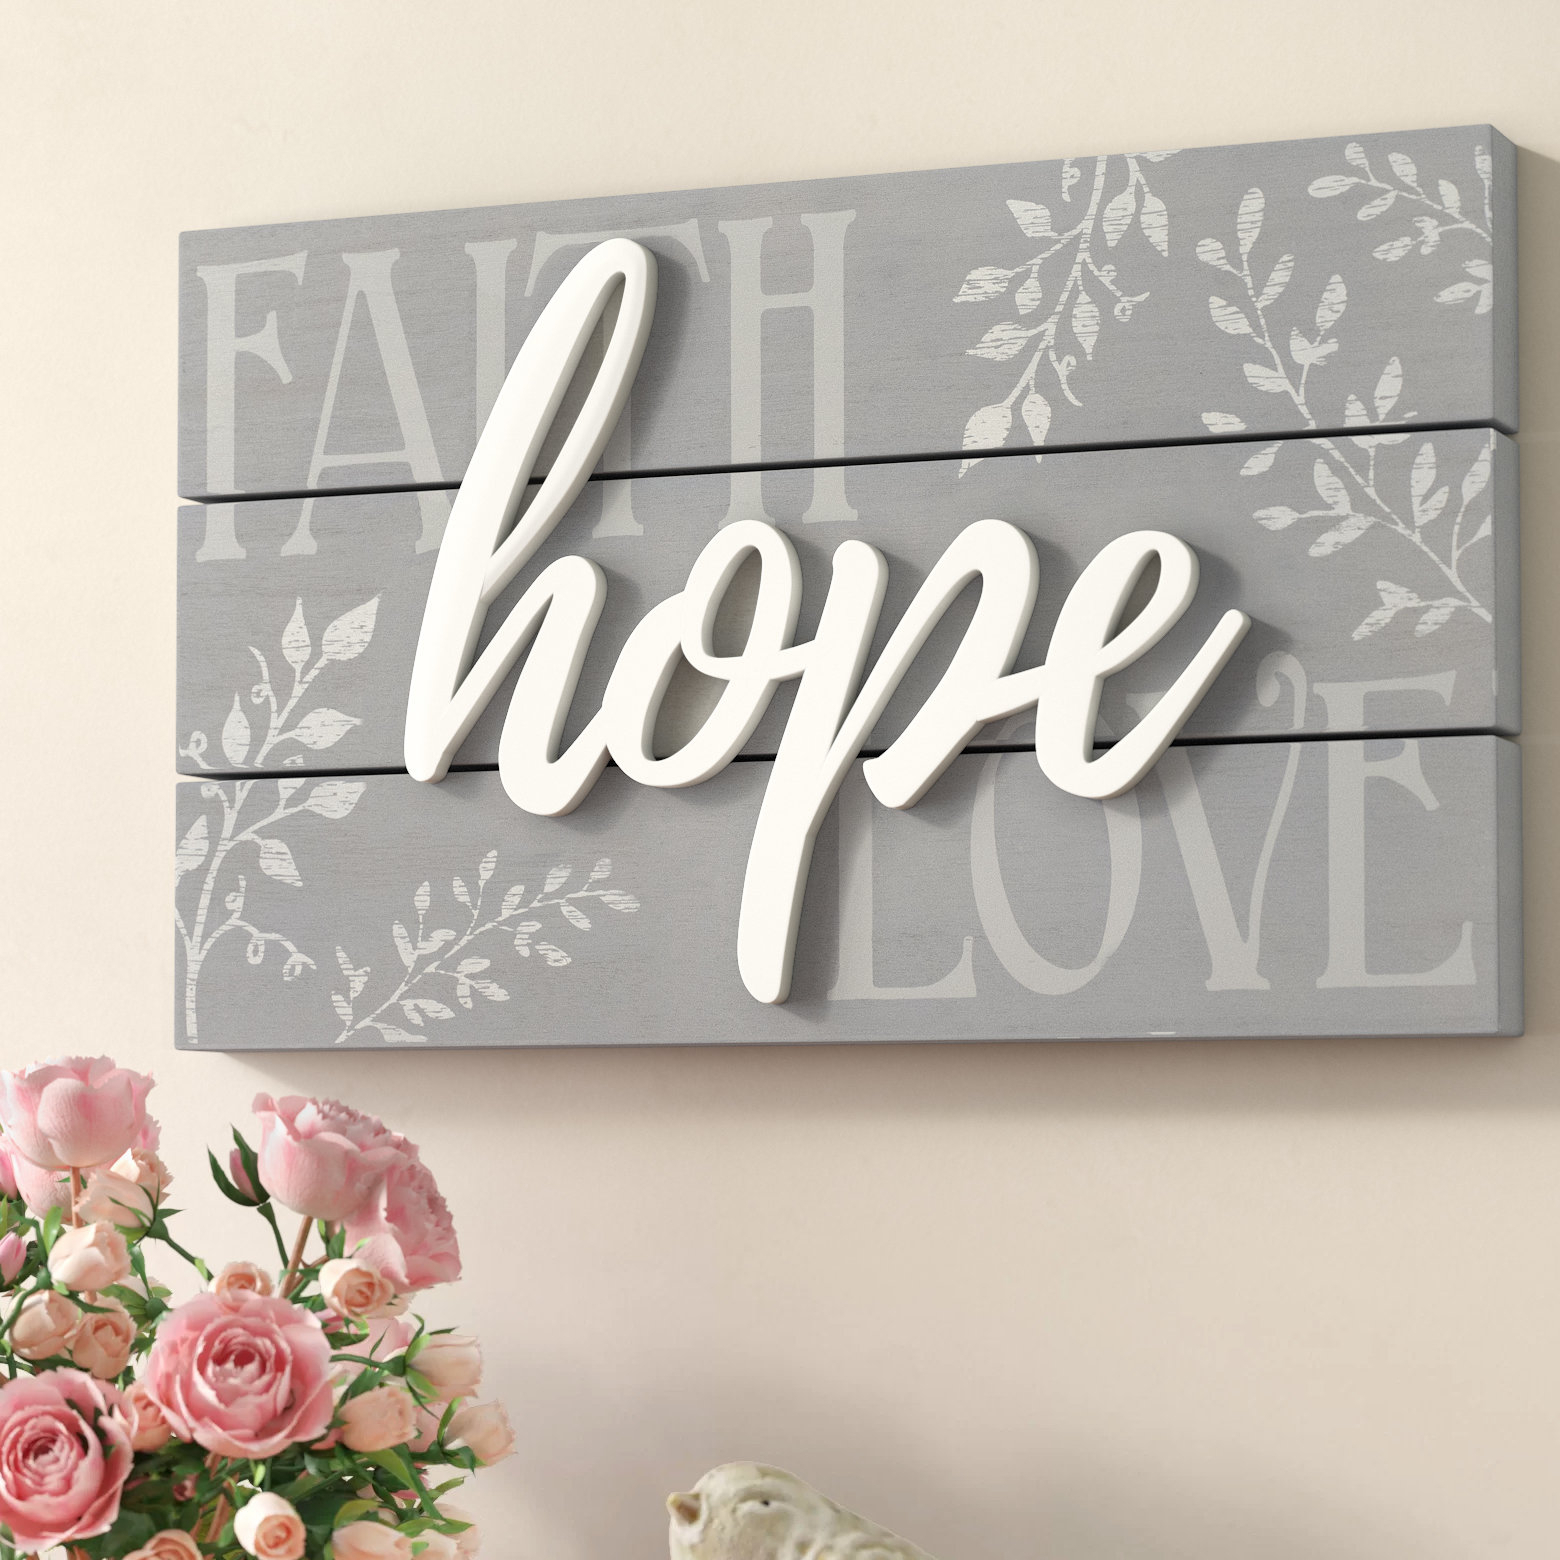 Featured Photo of Faith, Hope, Love Raised Sign Wall Decor by Winston Porter